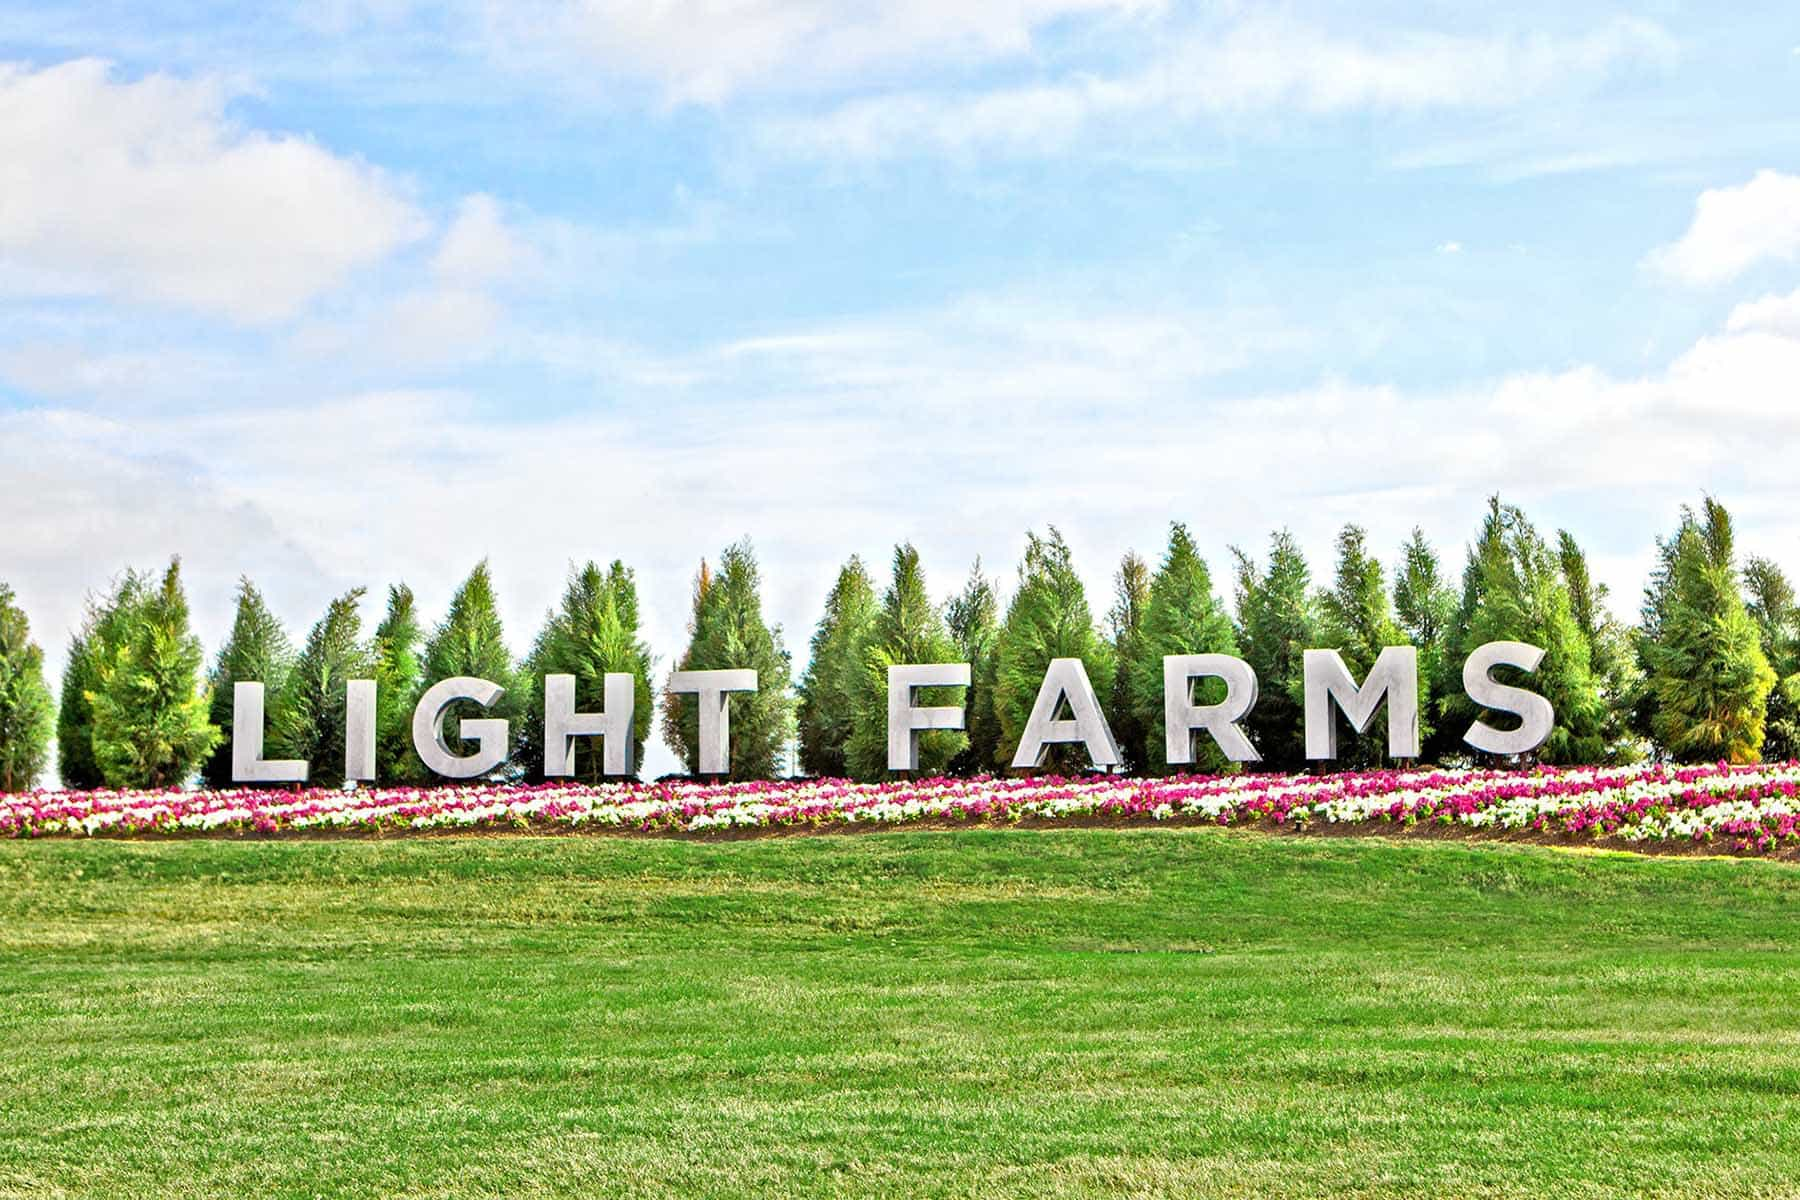 Light Farms Entrance